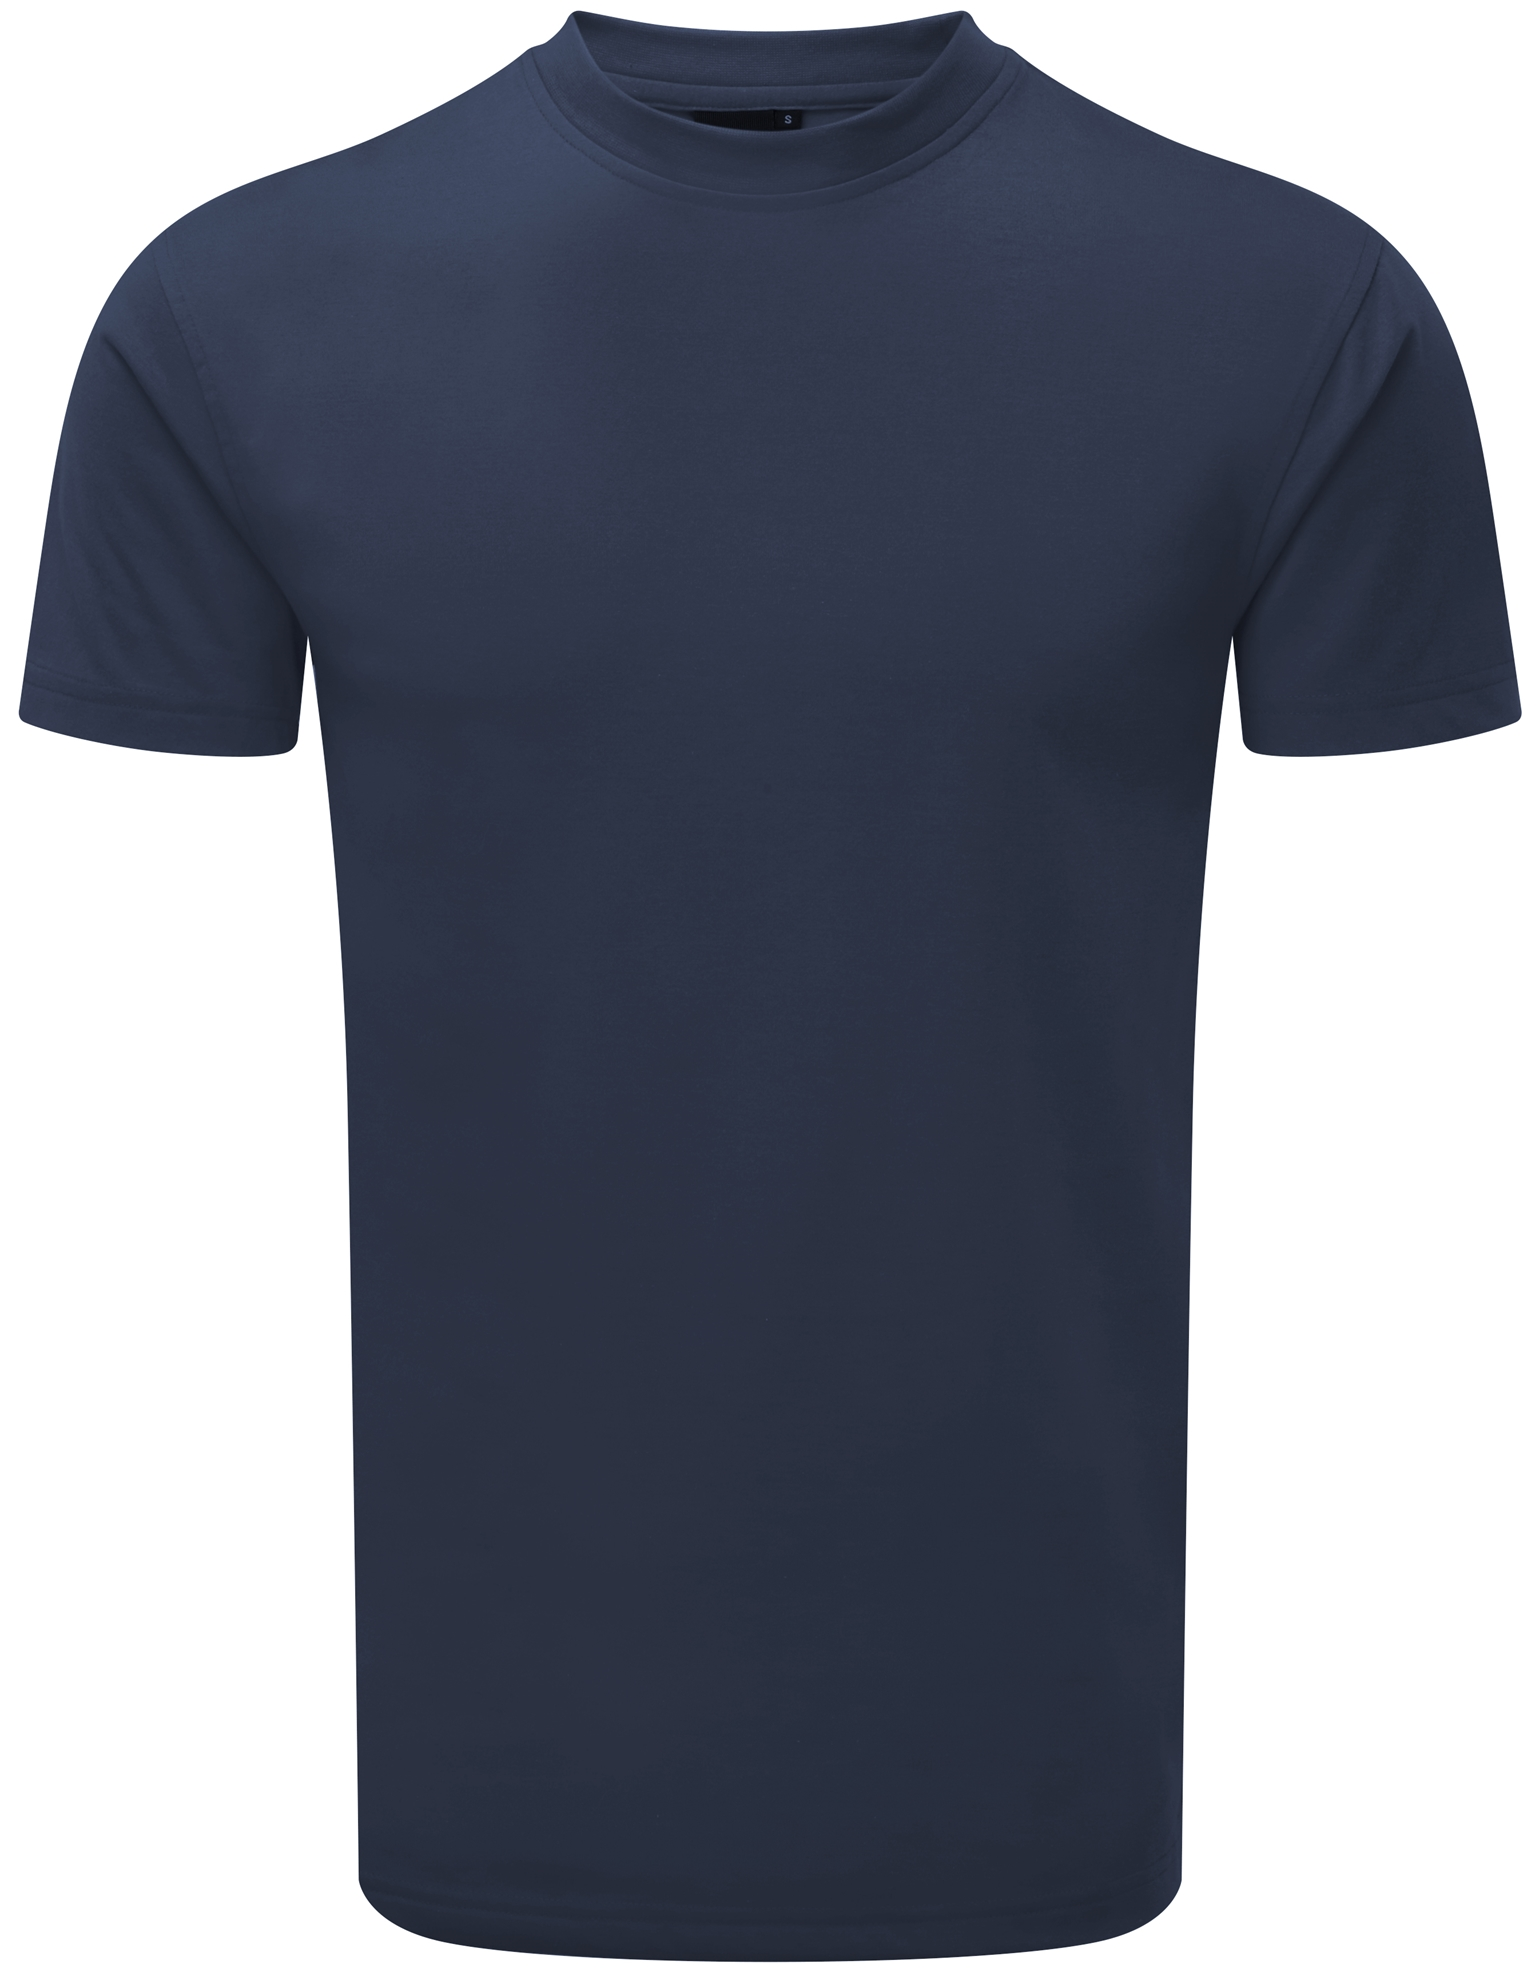 Picture of Gryzko Heavy Weight T-Shirt - Navy